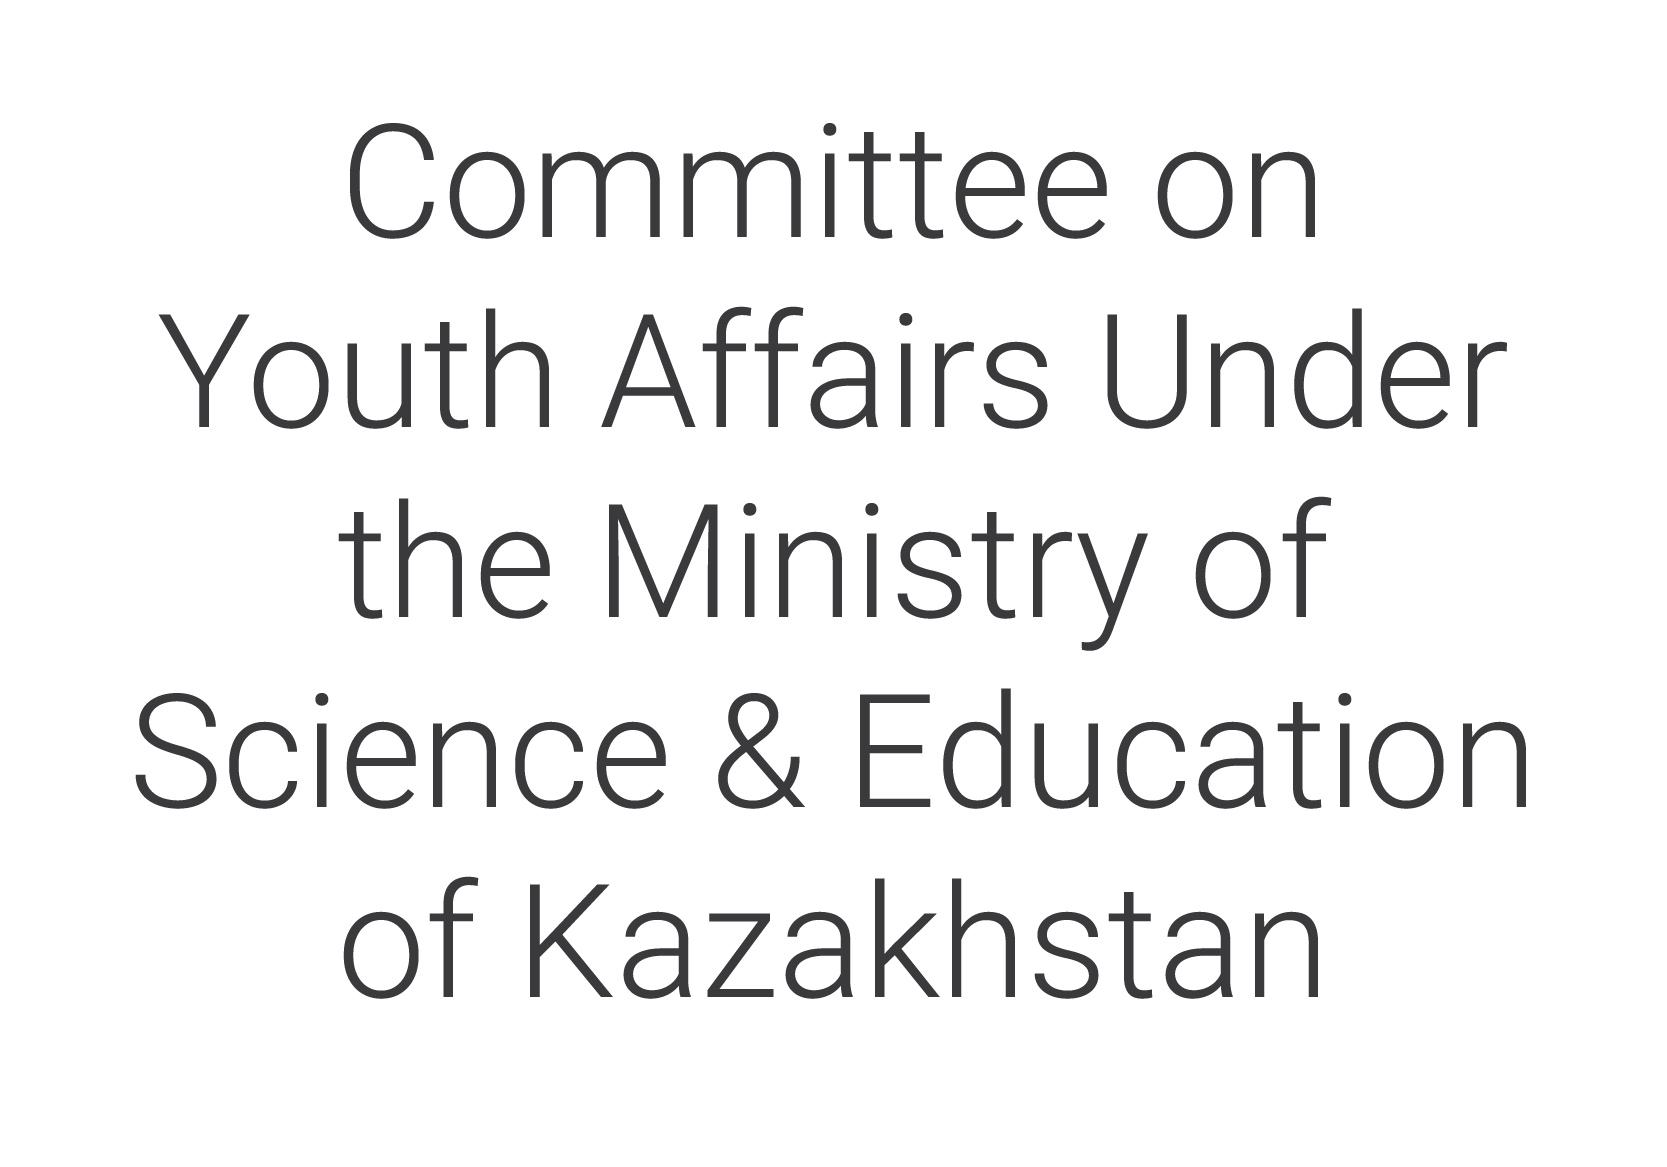 Committee on Youth Affairs Under the Ministry of Science & Education of Kazakhstan